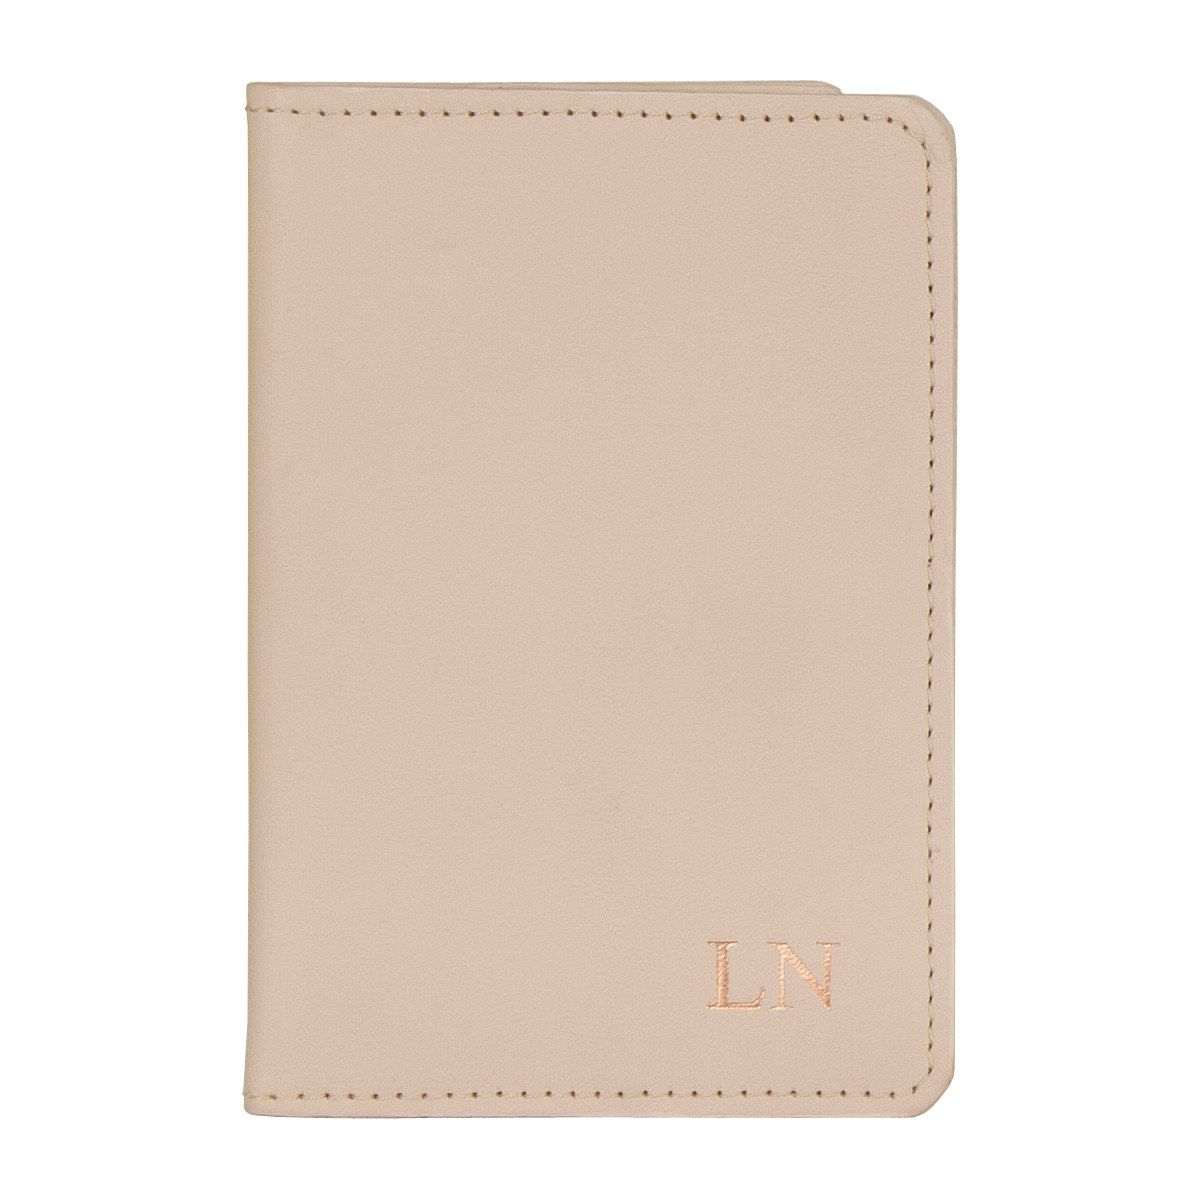 Leather Passport Holder Champagne, Part of the Luxury Leather Travel Set